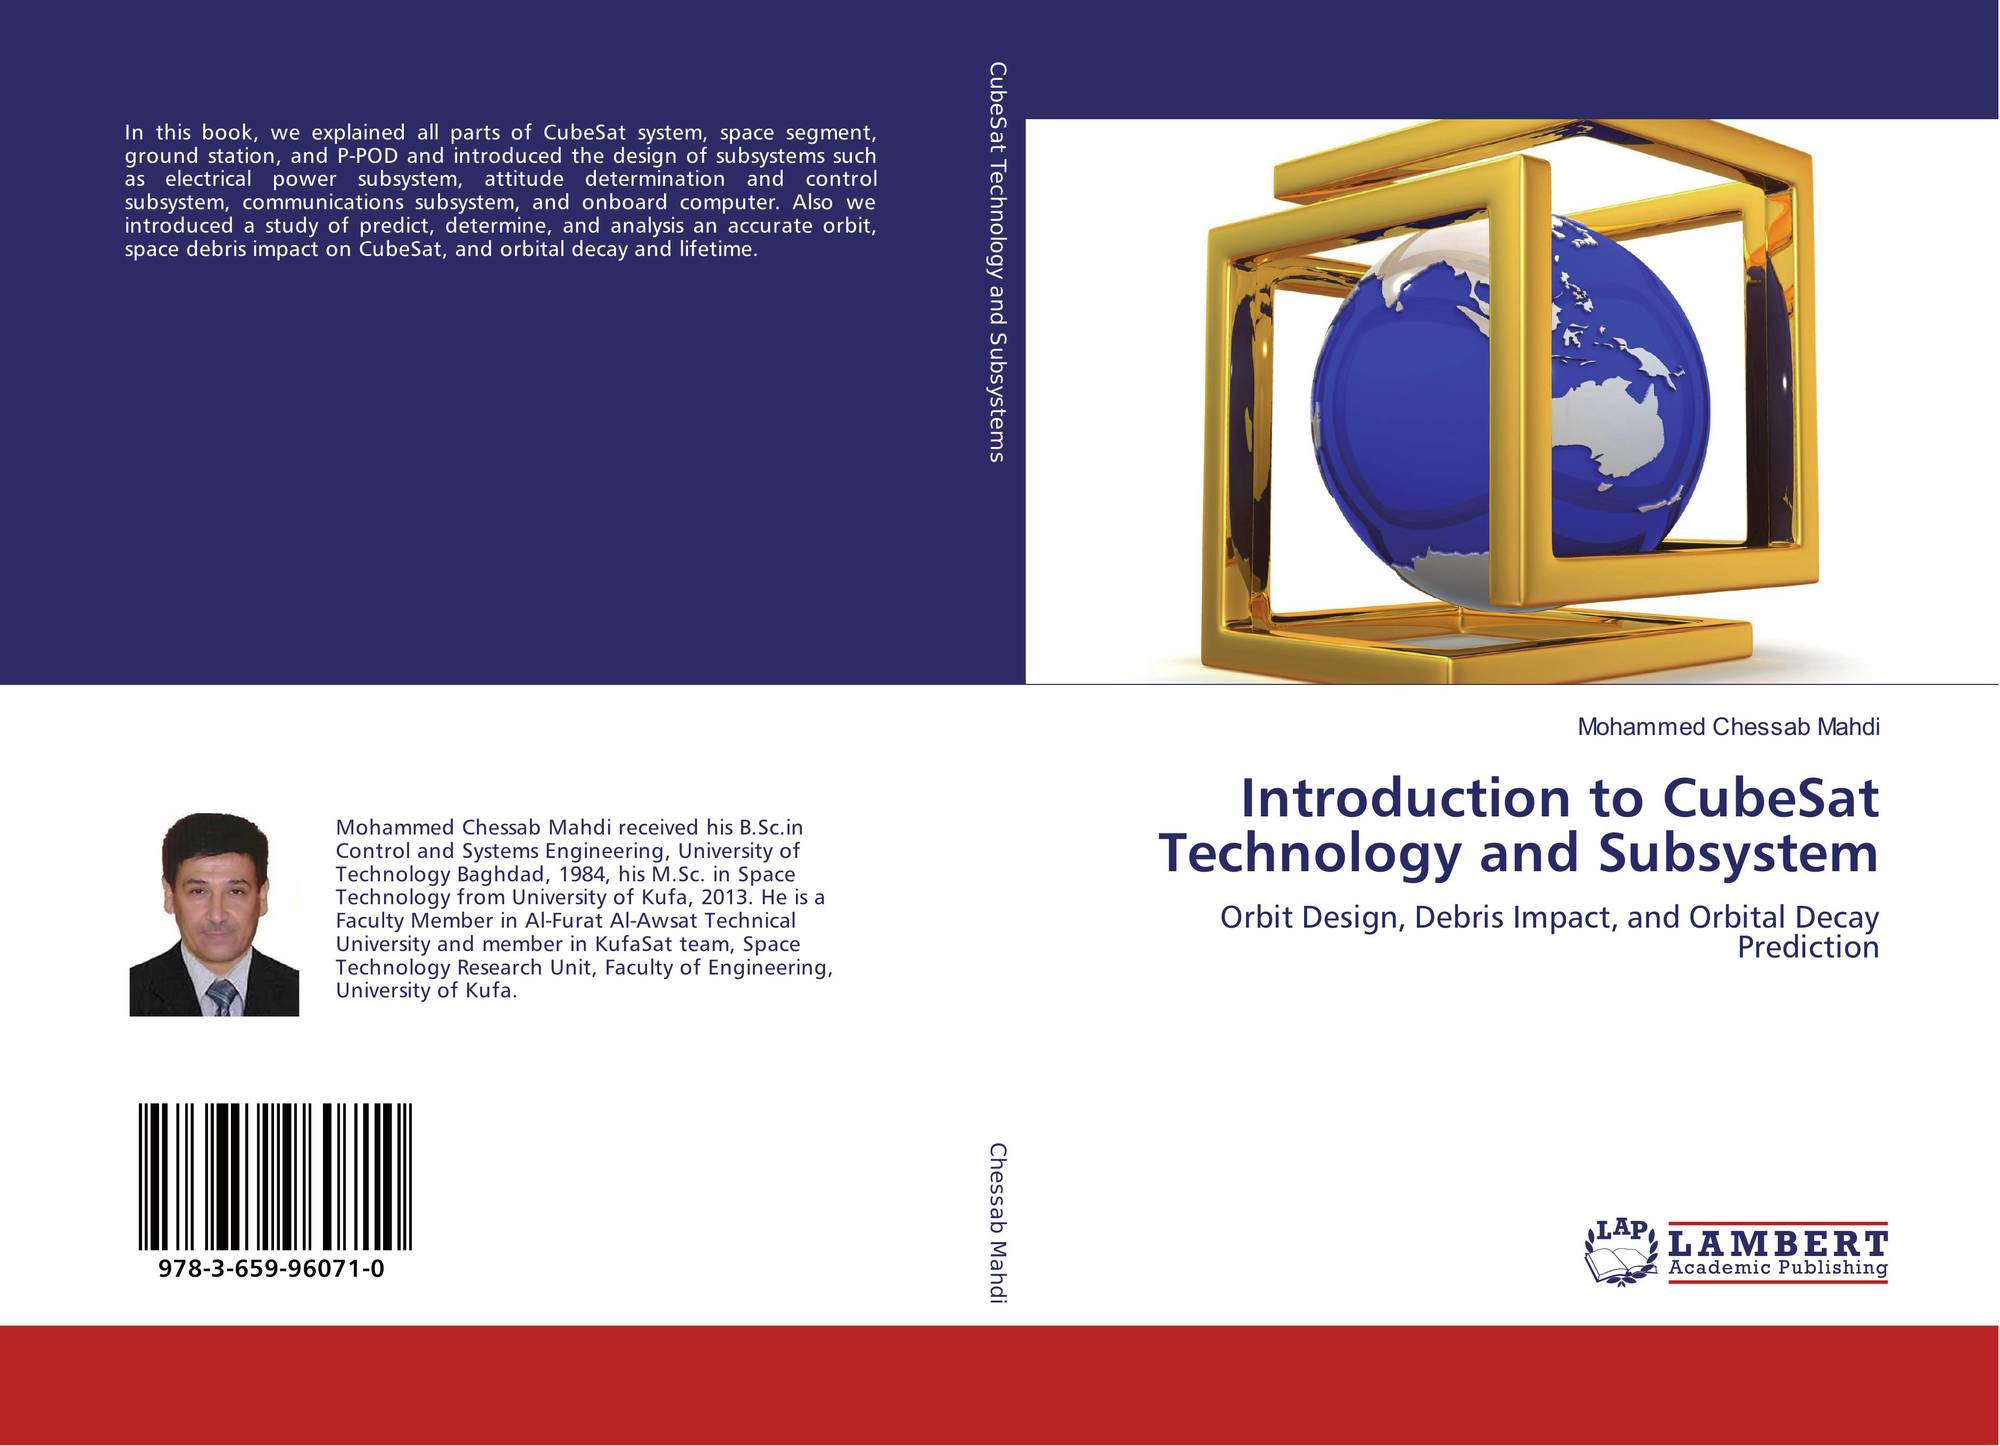 Introduction to CubeSat Technology and Subsystem, 978-3-659